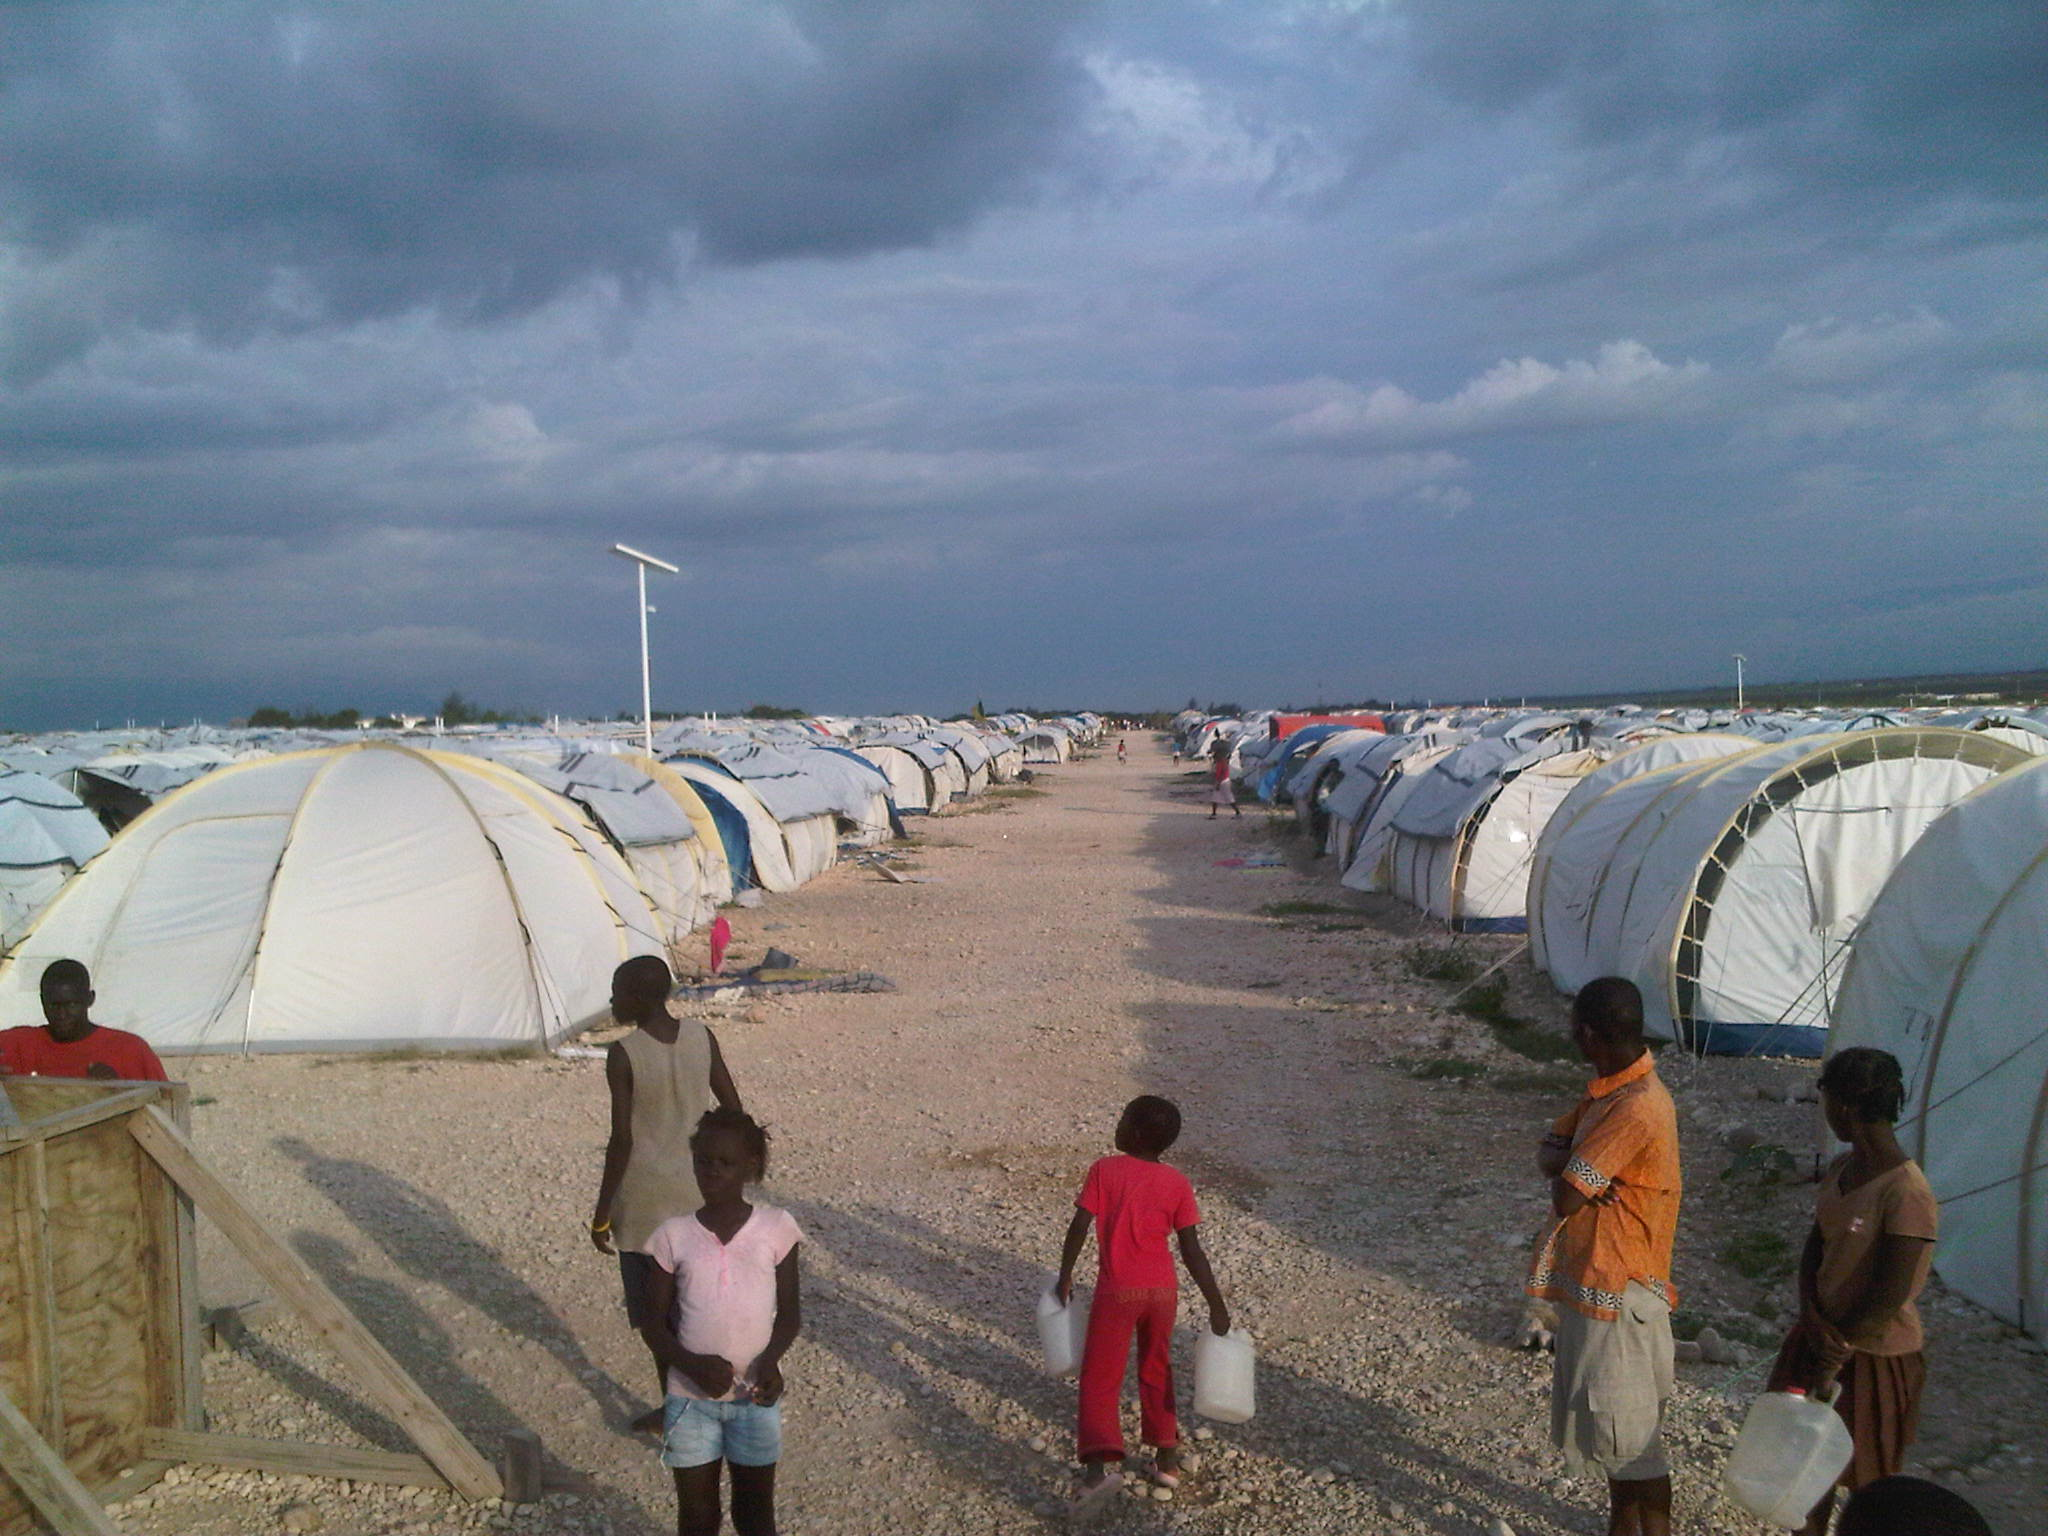 One of many tents Cities in Haiti